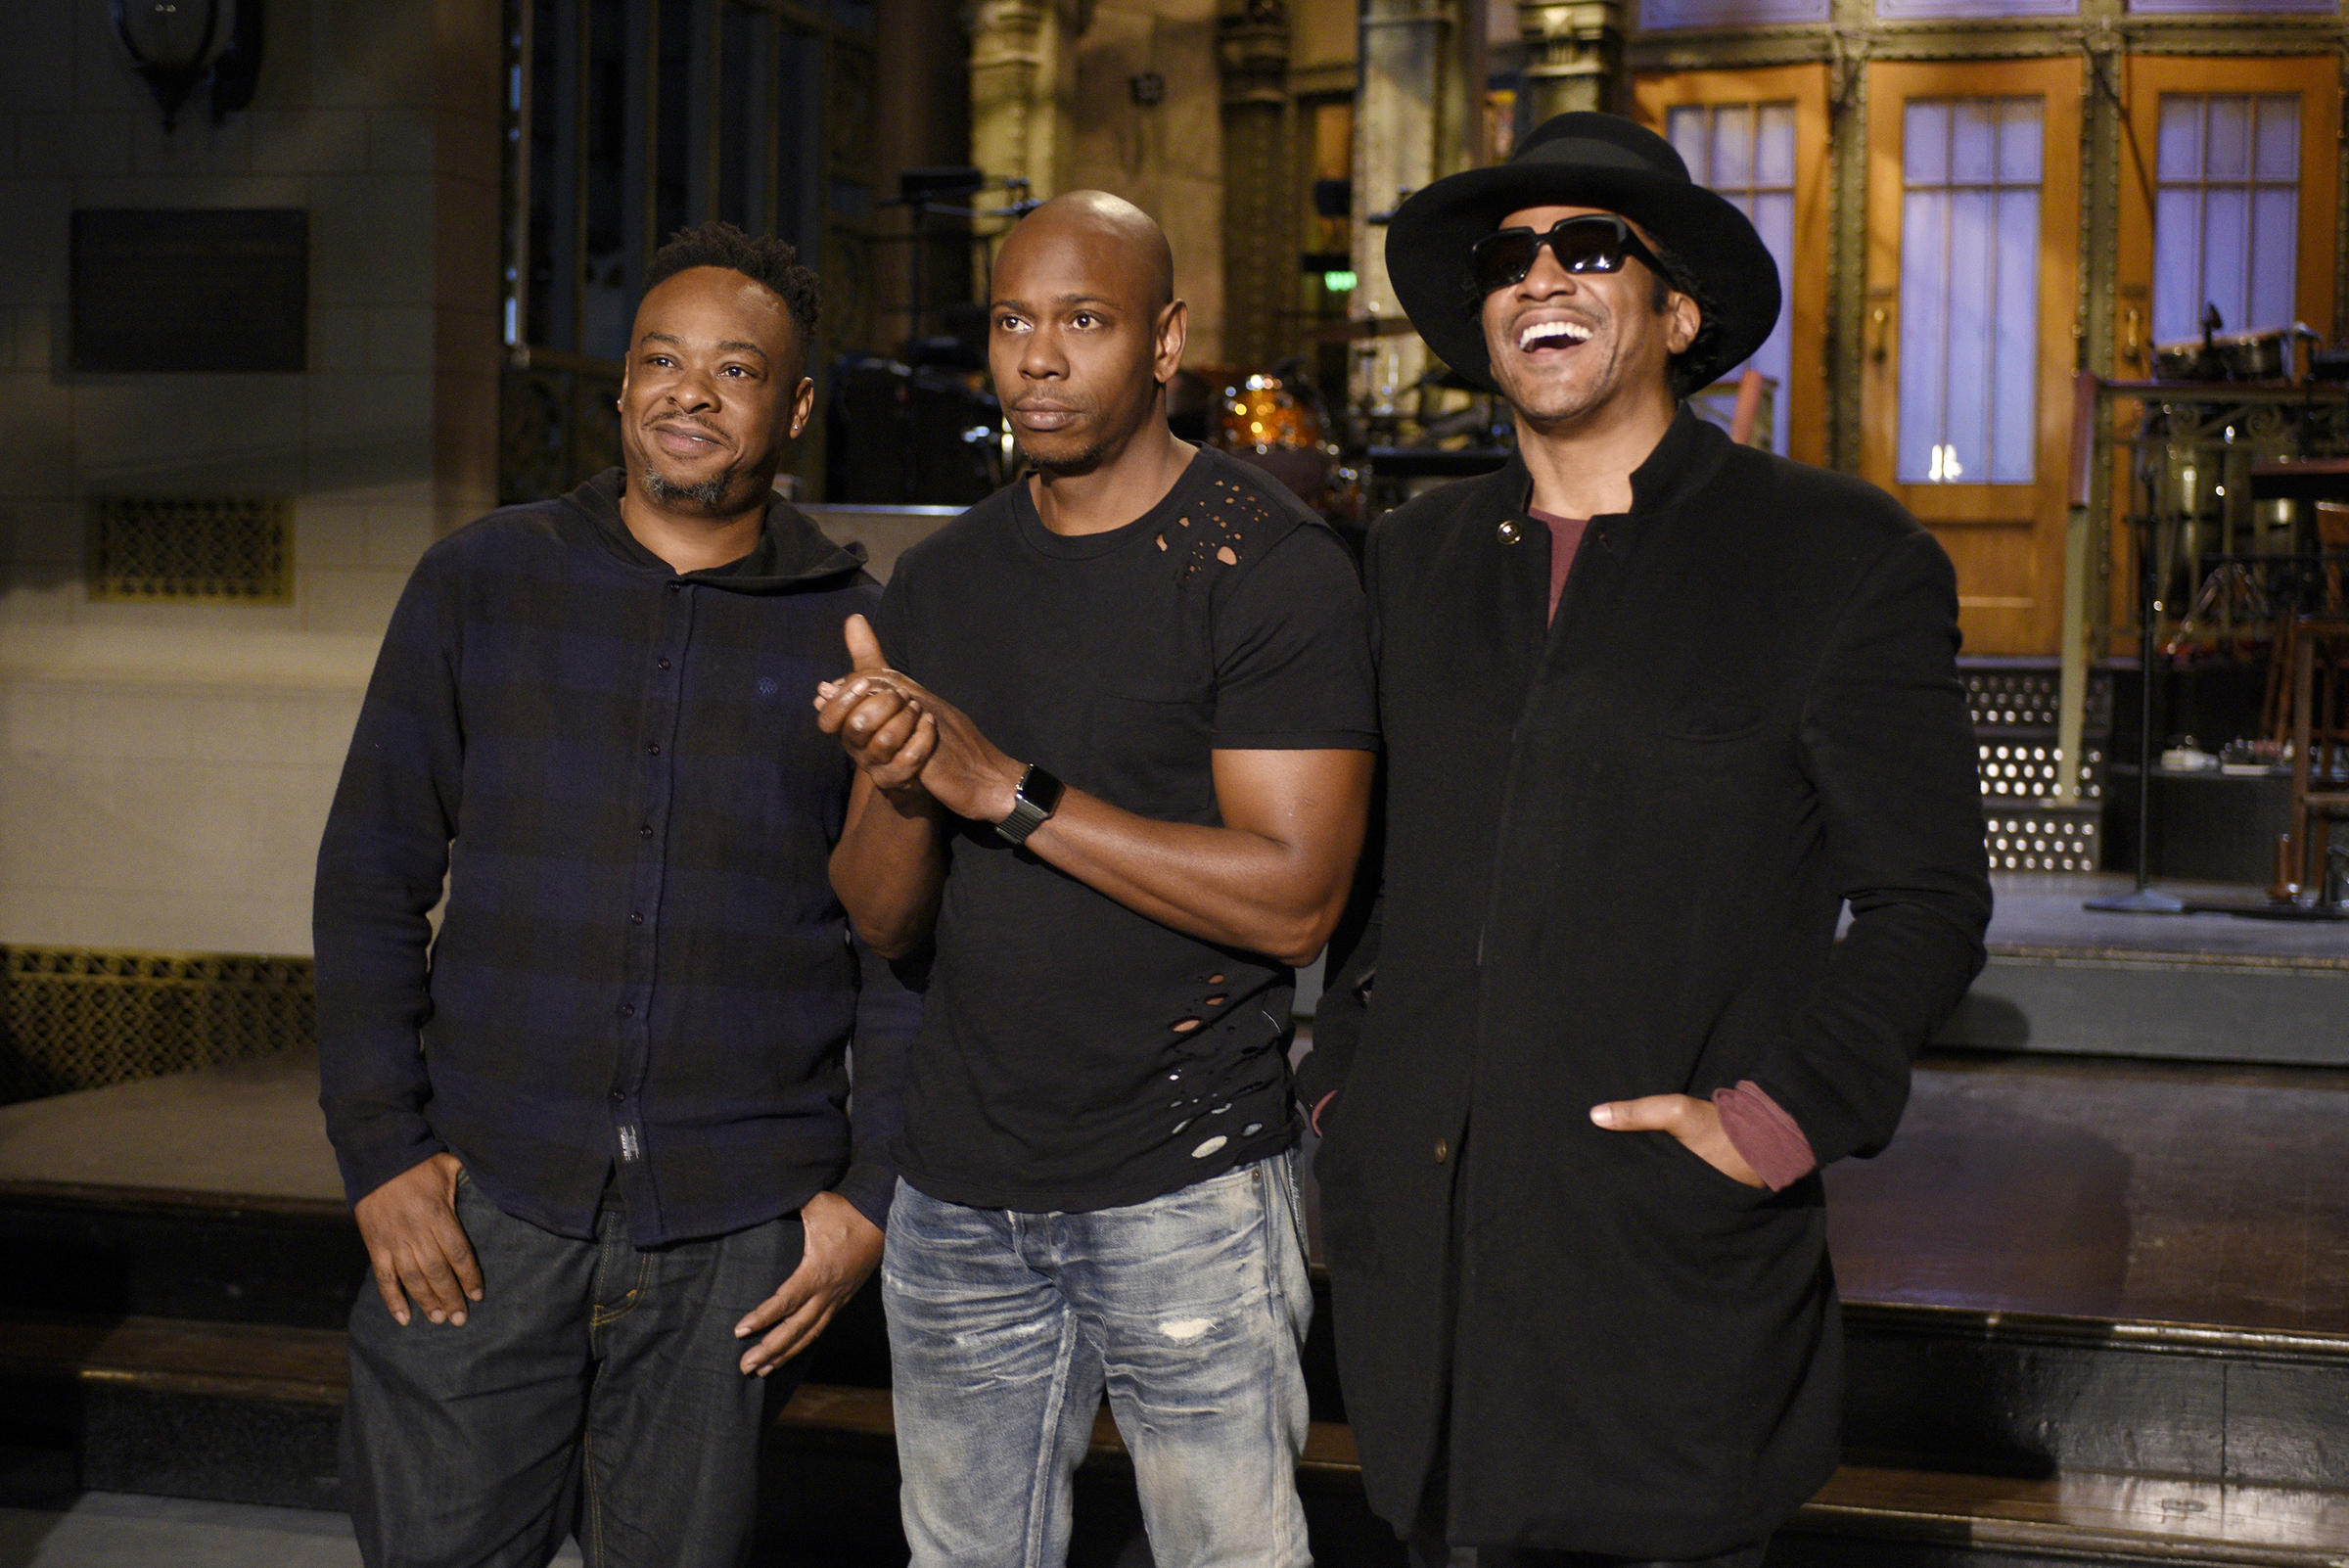 Dave Chappelle to host the next episode of 'Saturday Night Live'